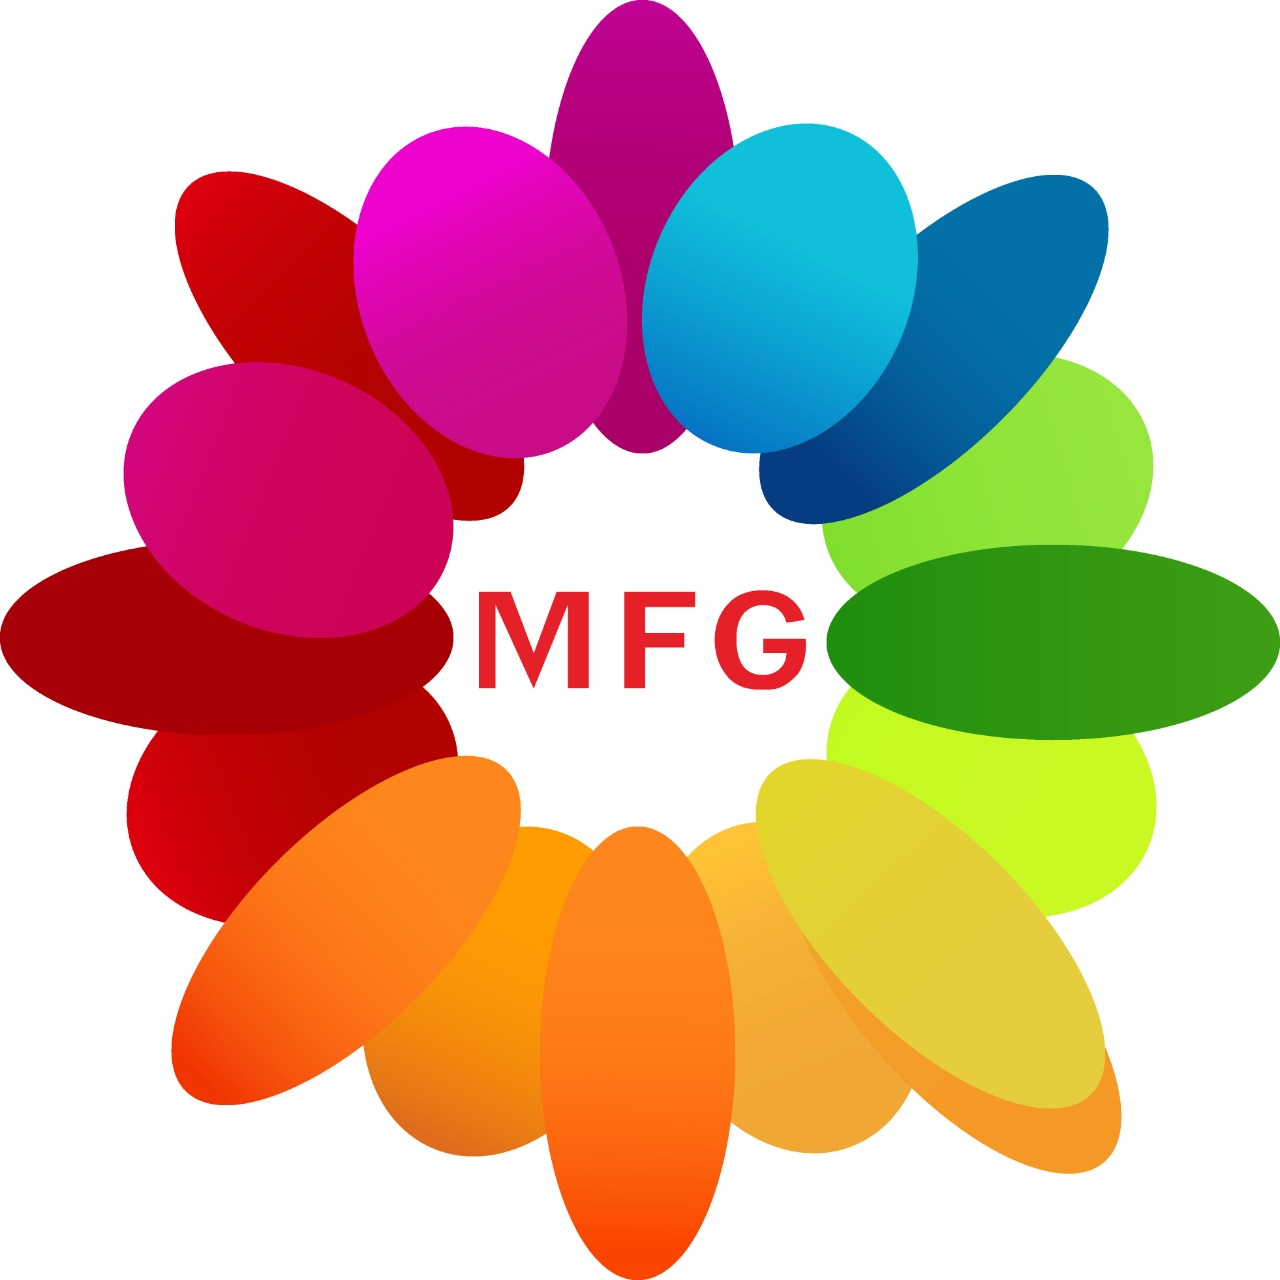 bunch of 5 pink  lilies with 1 pound chocovanilla cake with 6 inch height teddybear